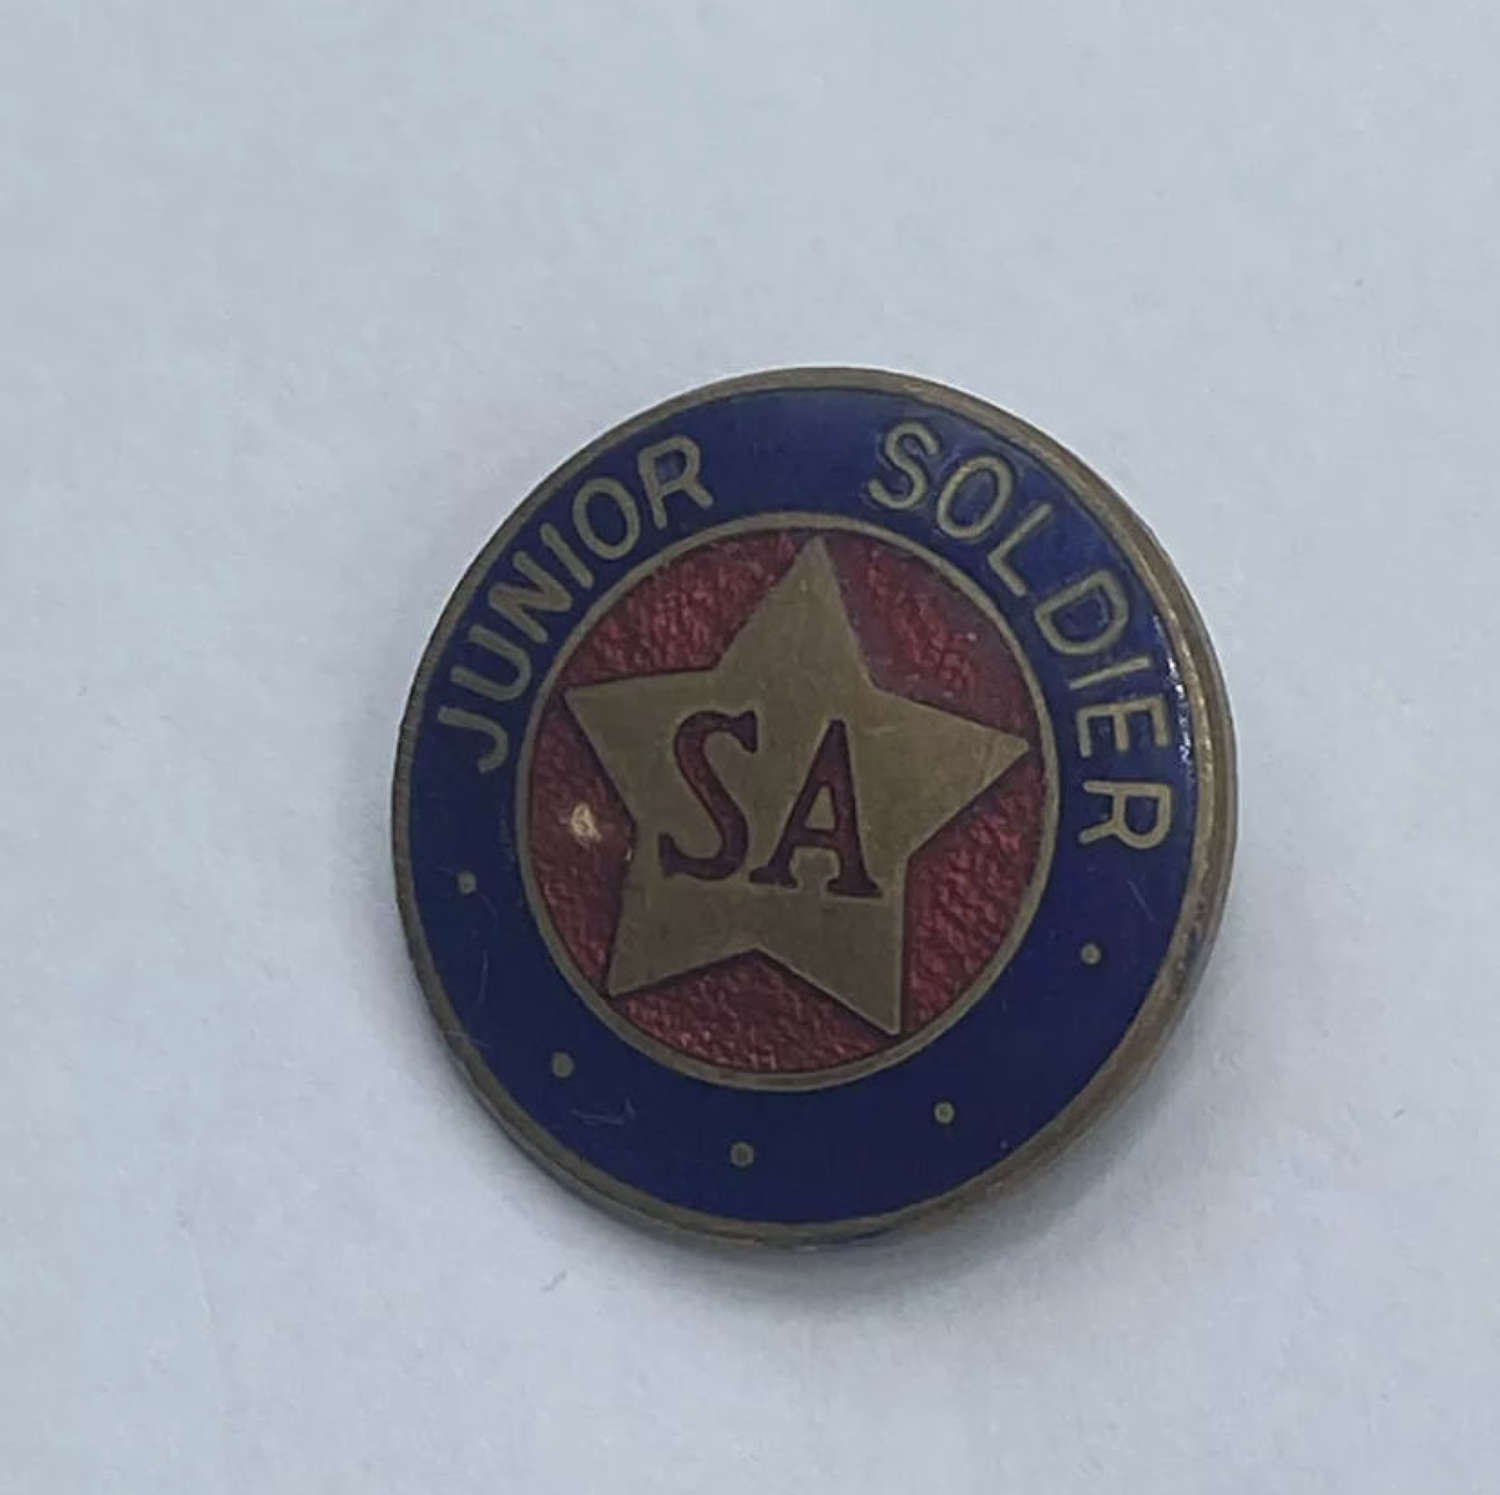 Vintage 1950s Salvation Army Junior Soldier Enamel And Brass Badge